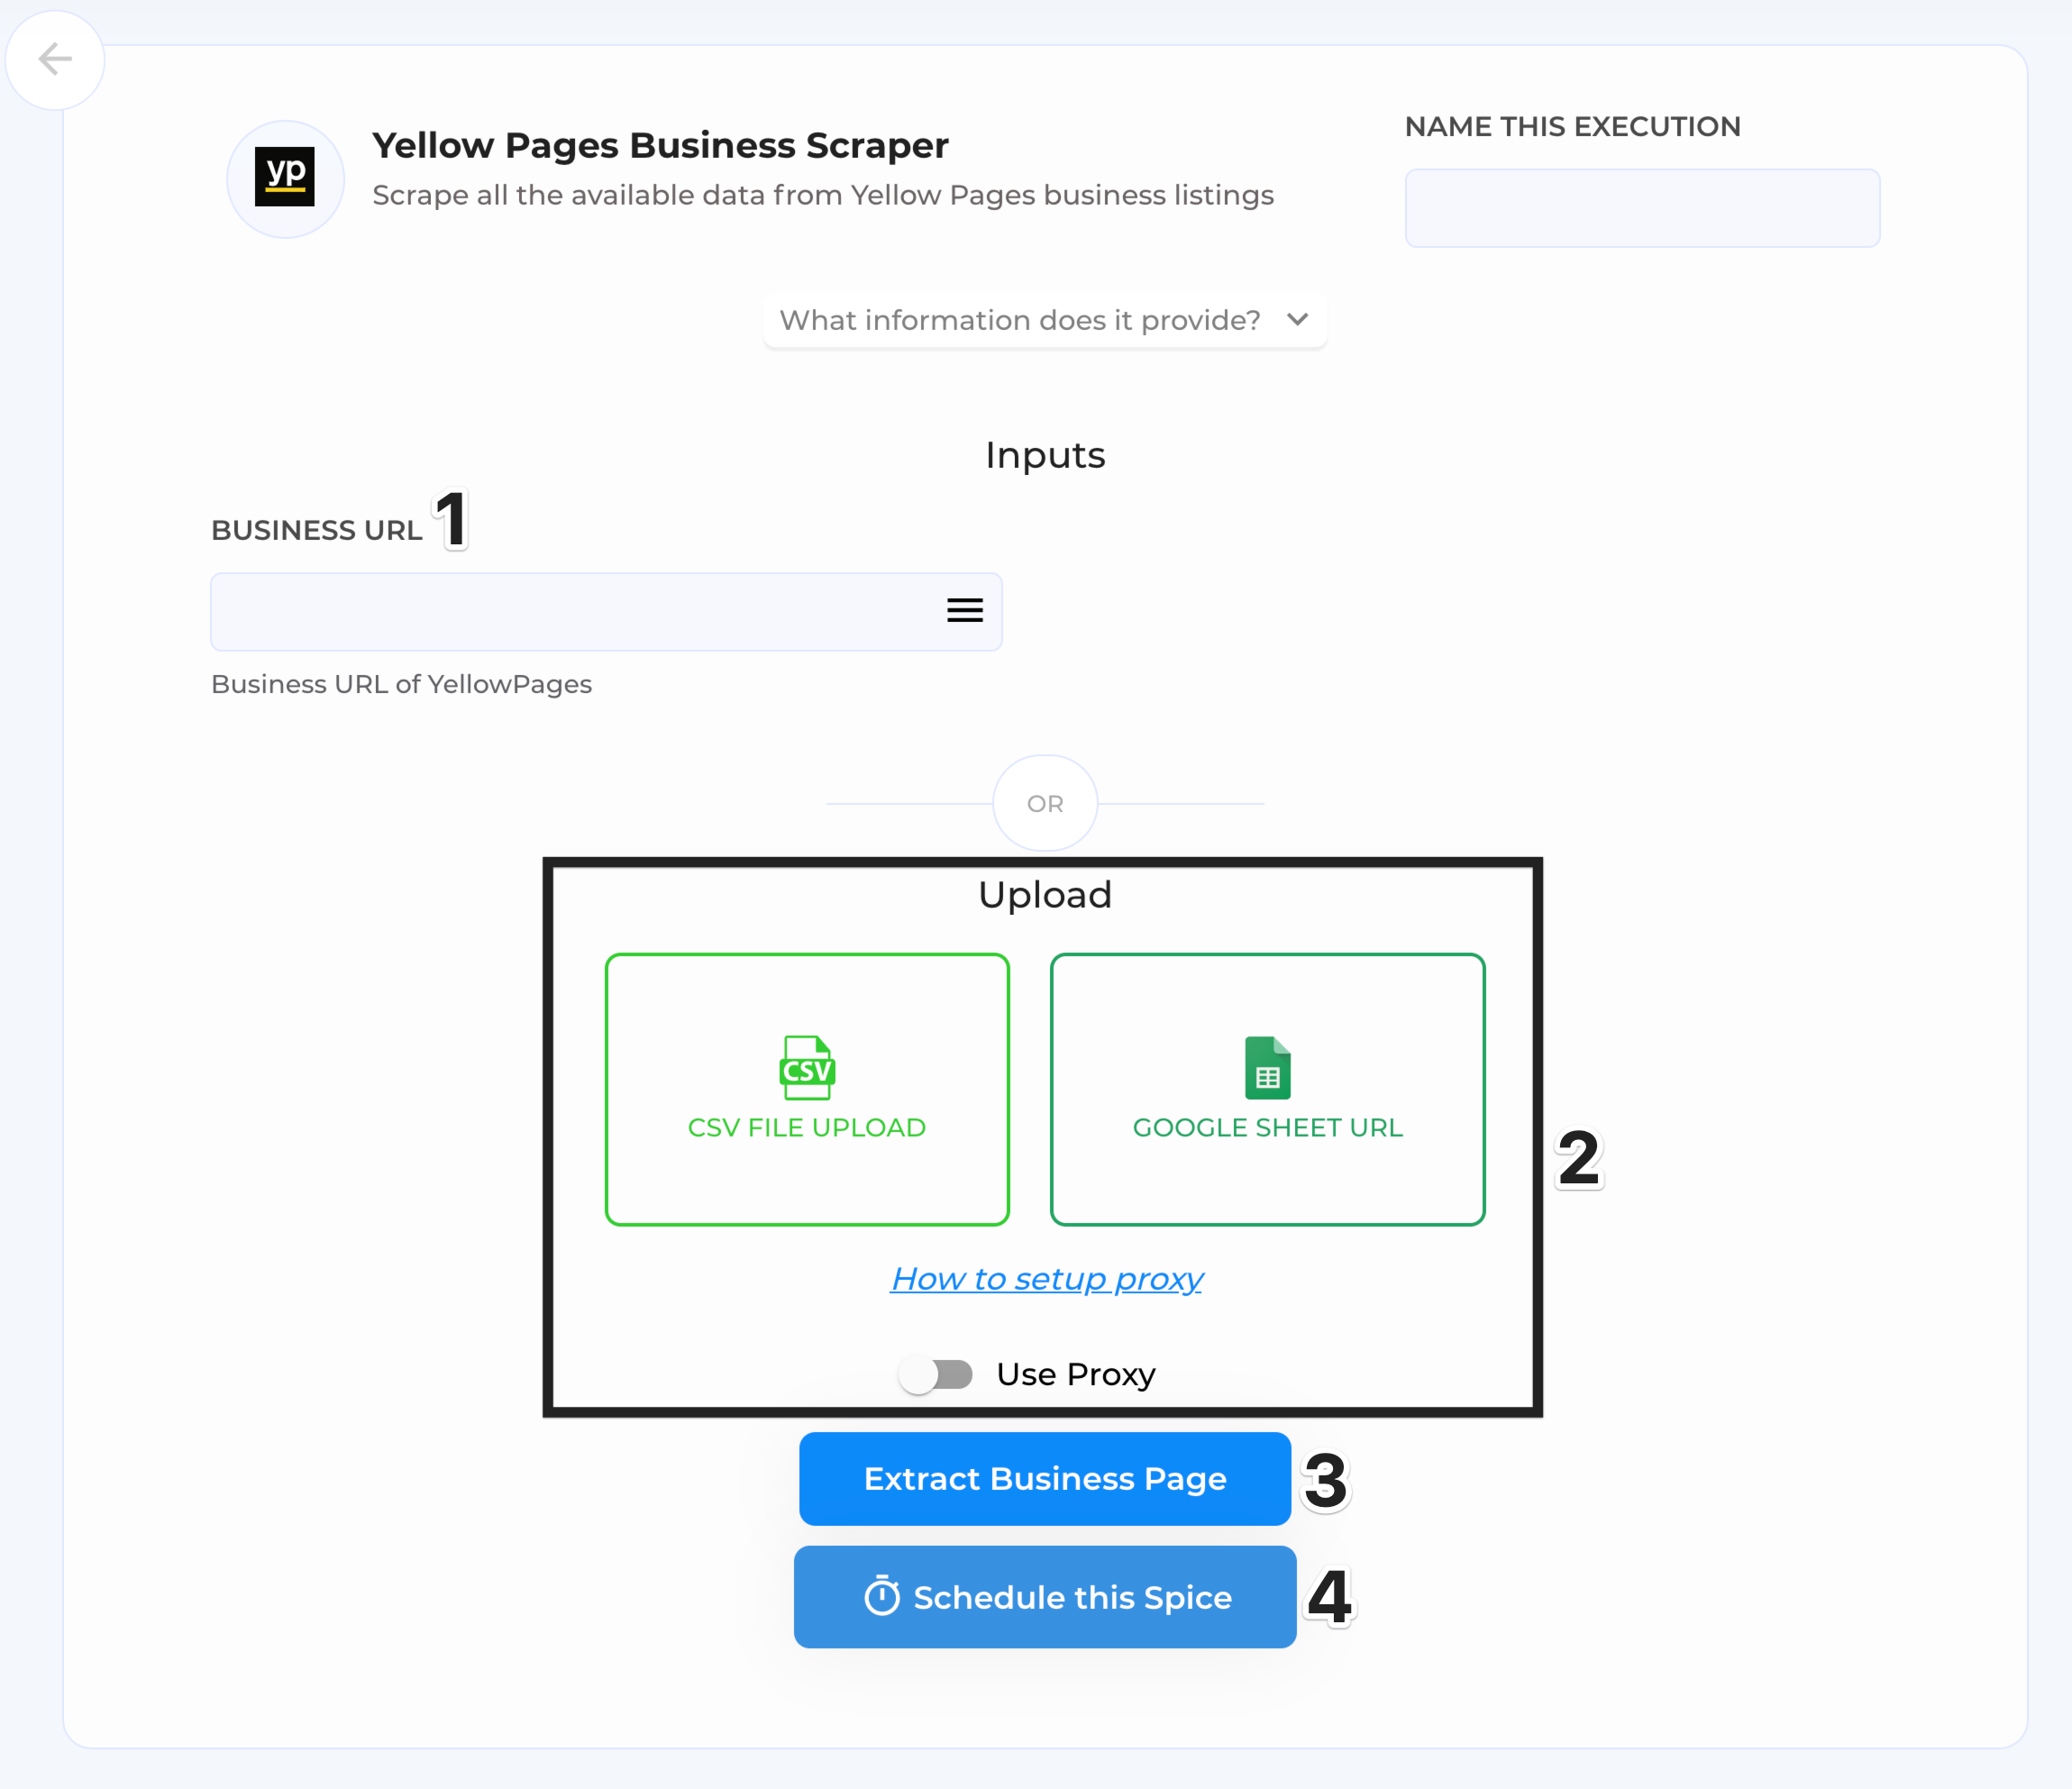 extract business page execution window